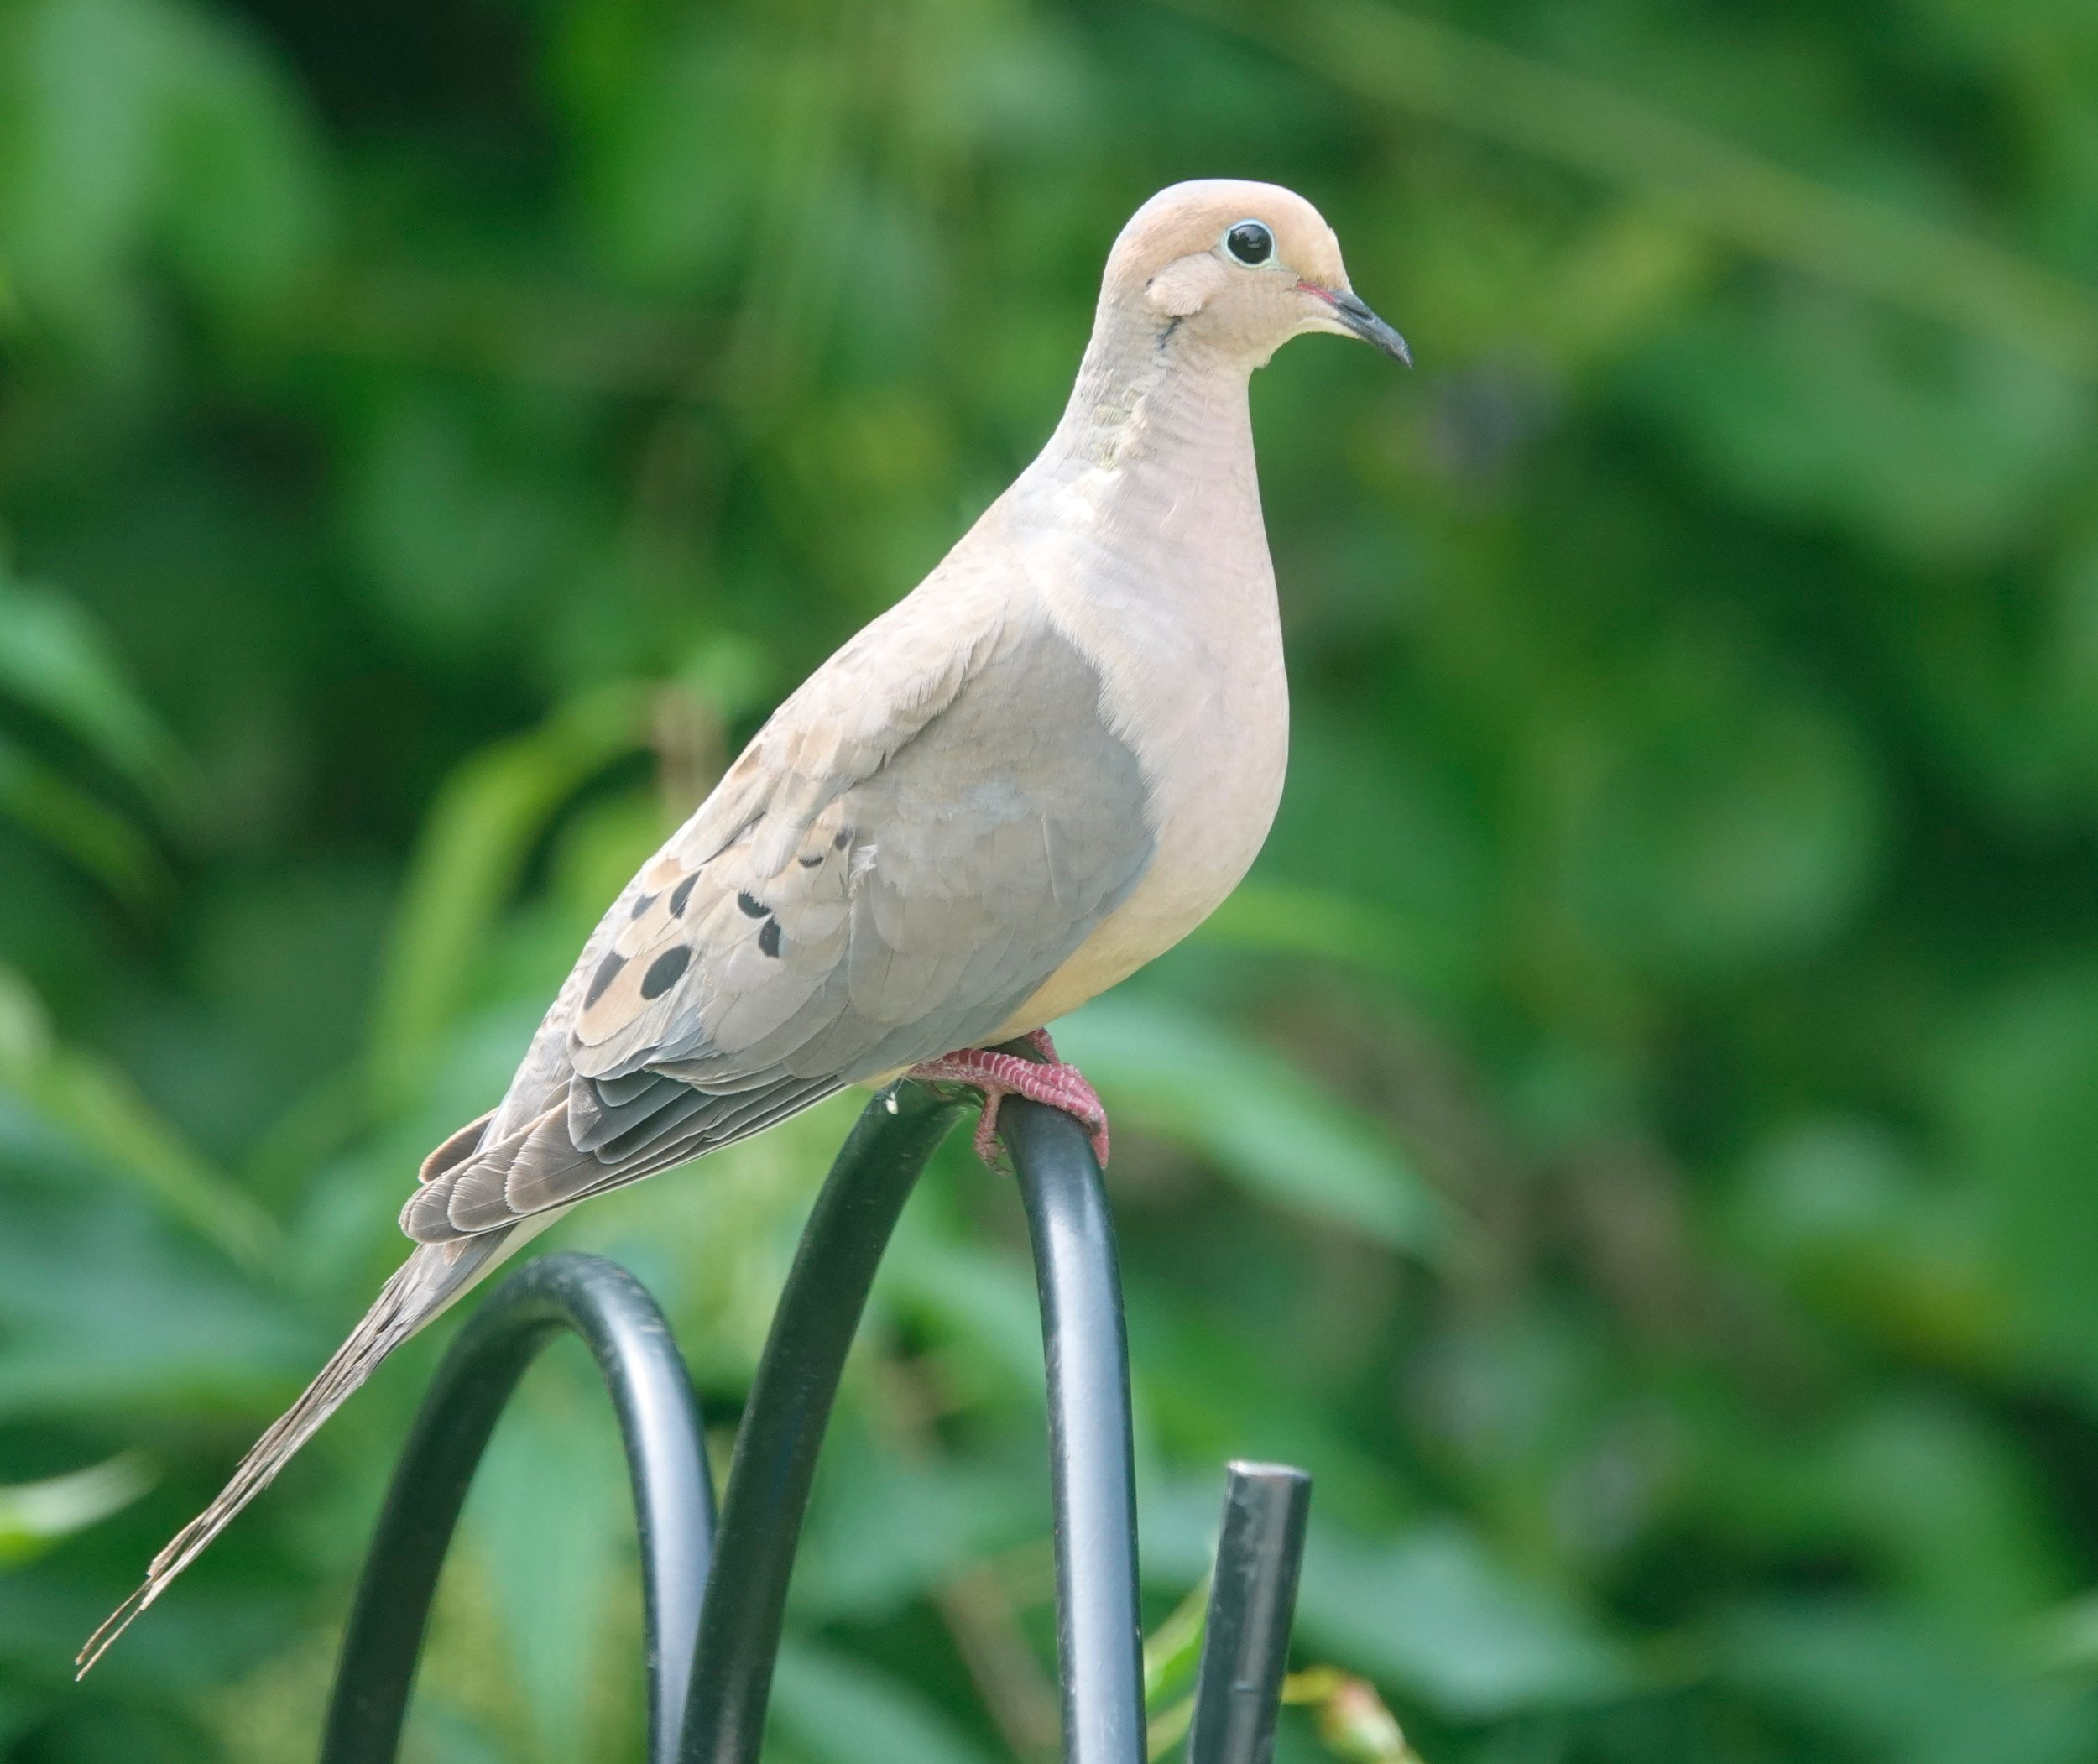 John James Audubon called it the Carolina pigeon or turtle dove. We call it the mourning dove. It's Wisconsin's official state symbol of peace.